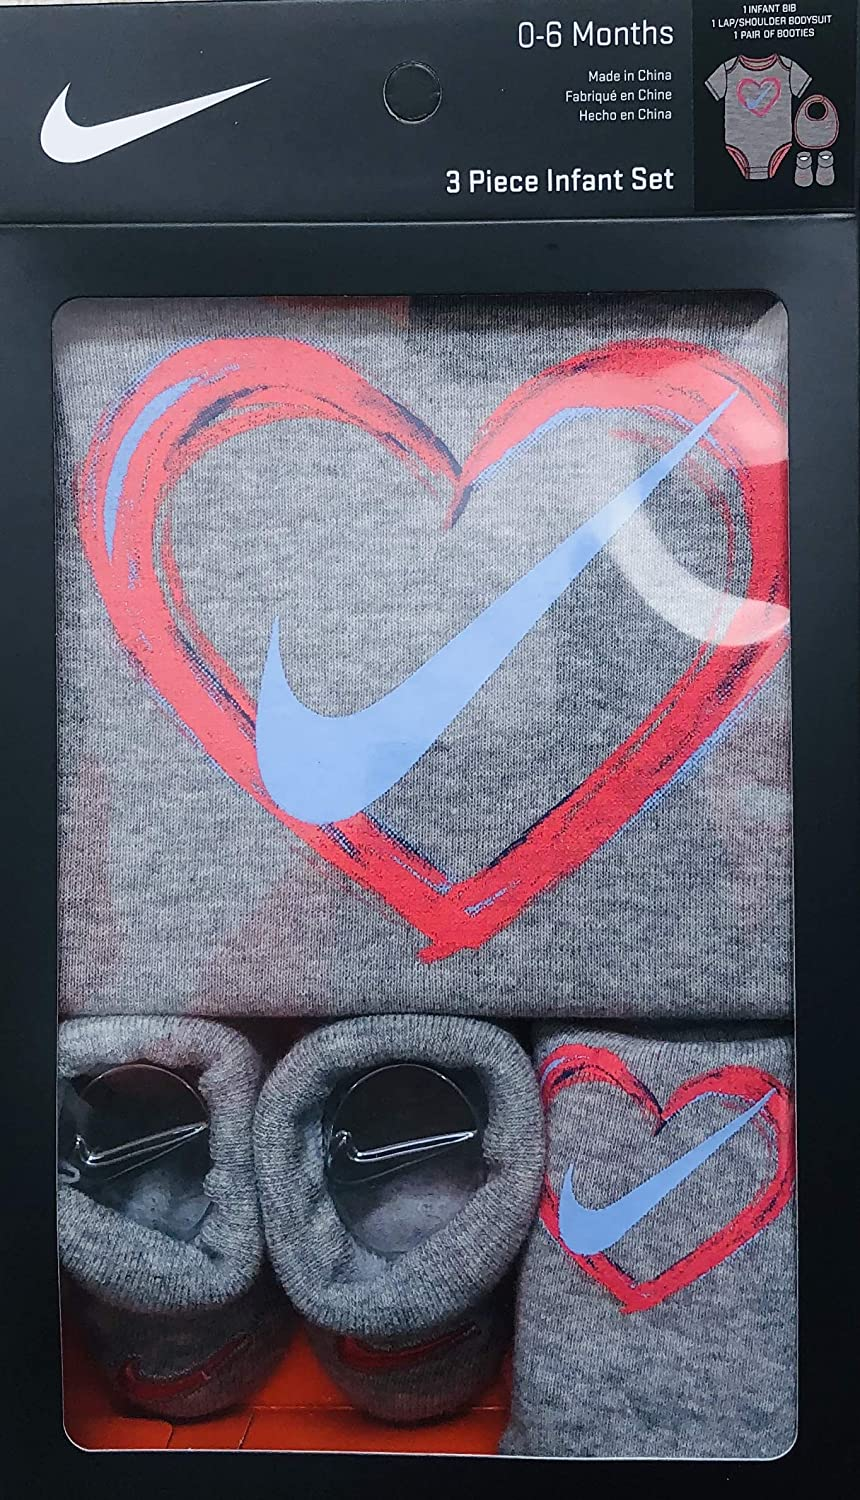 754a136bb576 Amazon.com  Jordan or Nike 3 Pieces Newborn Boys or Girls Gift Box 0-6 or 6-12  Months 100% Cotton